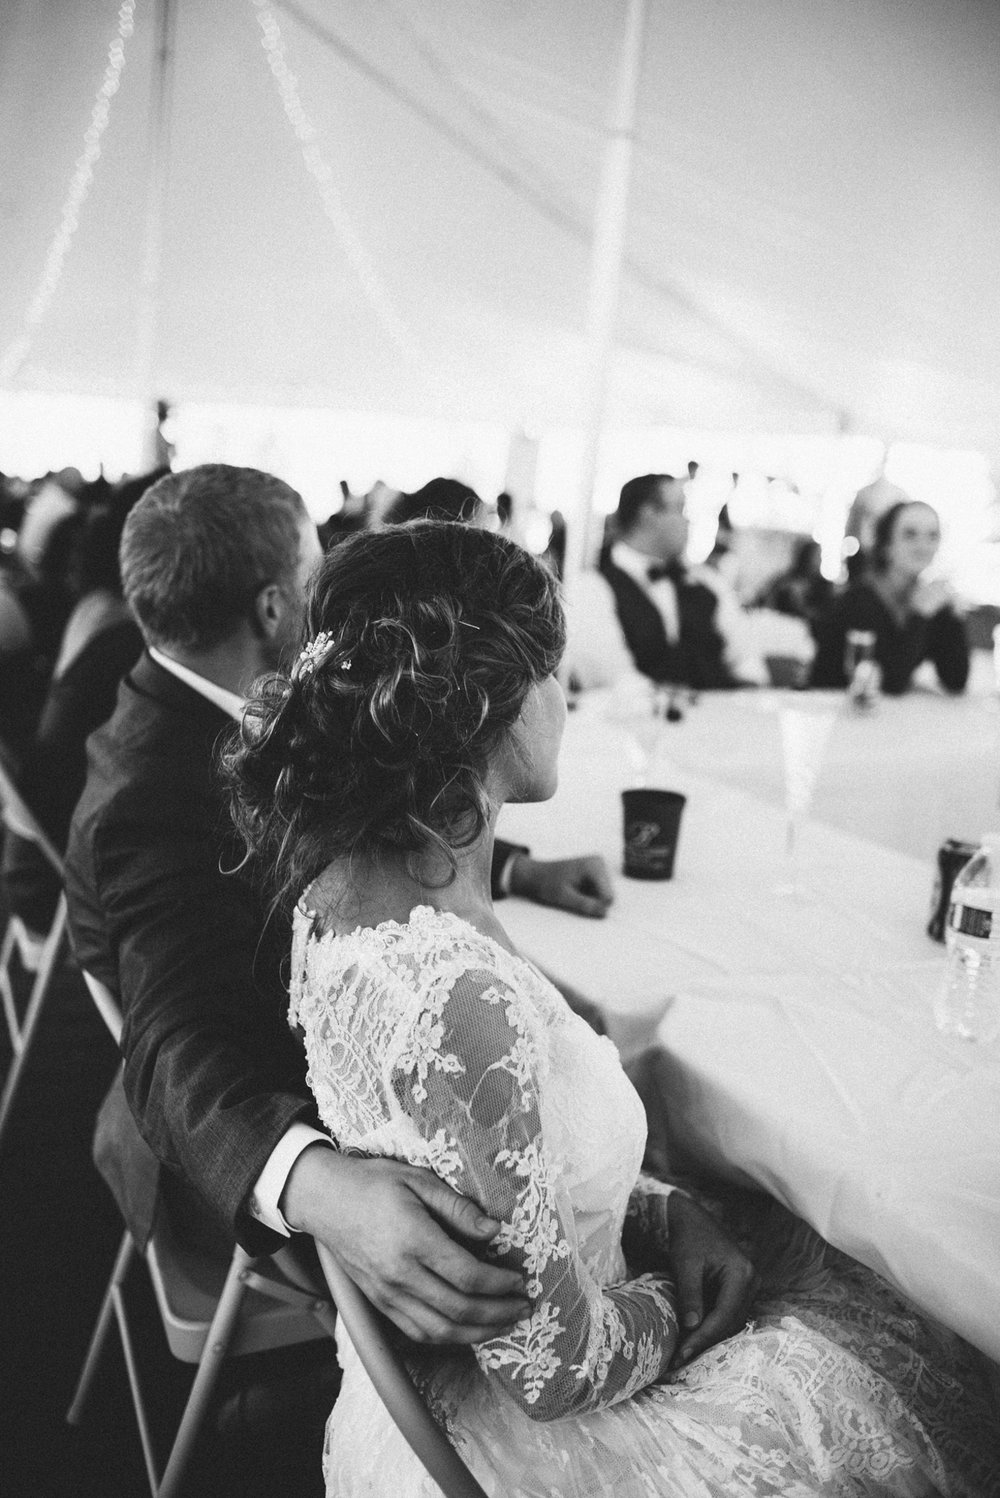 Wedding - Wedding Reception Pictures - Luray - Virginia - White Sails Creative - White Sails Photography - Black and White - Party pictures - Celebration Photos - Dancing - Fun_2.jpg